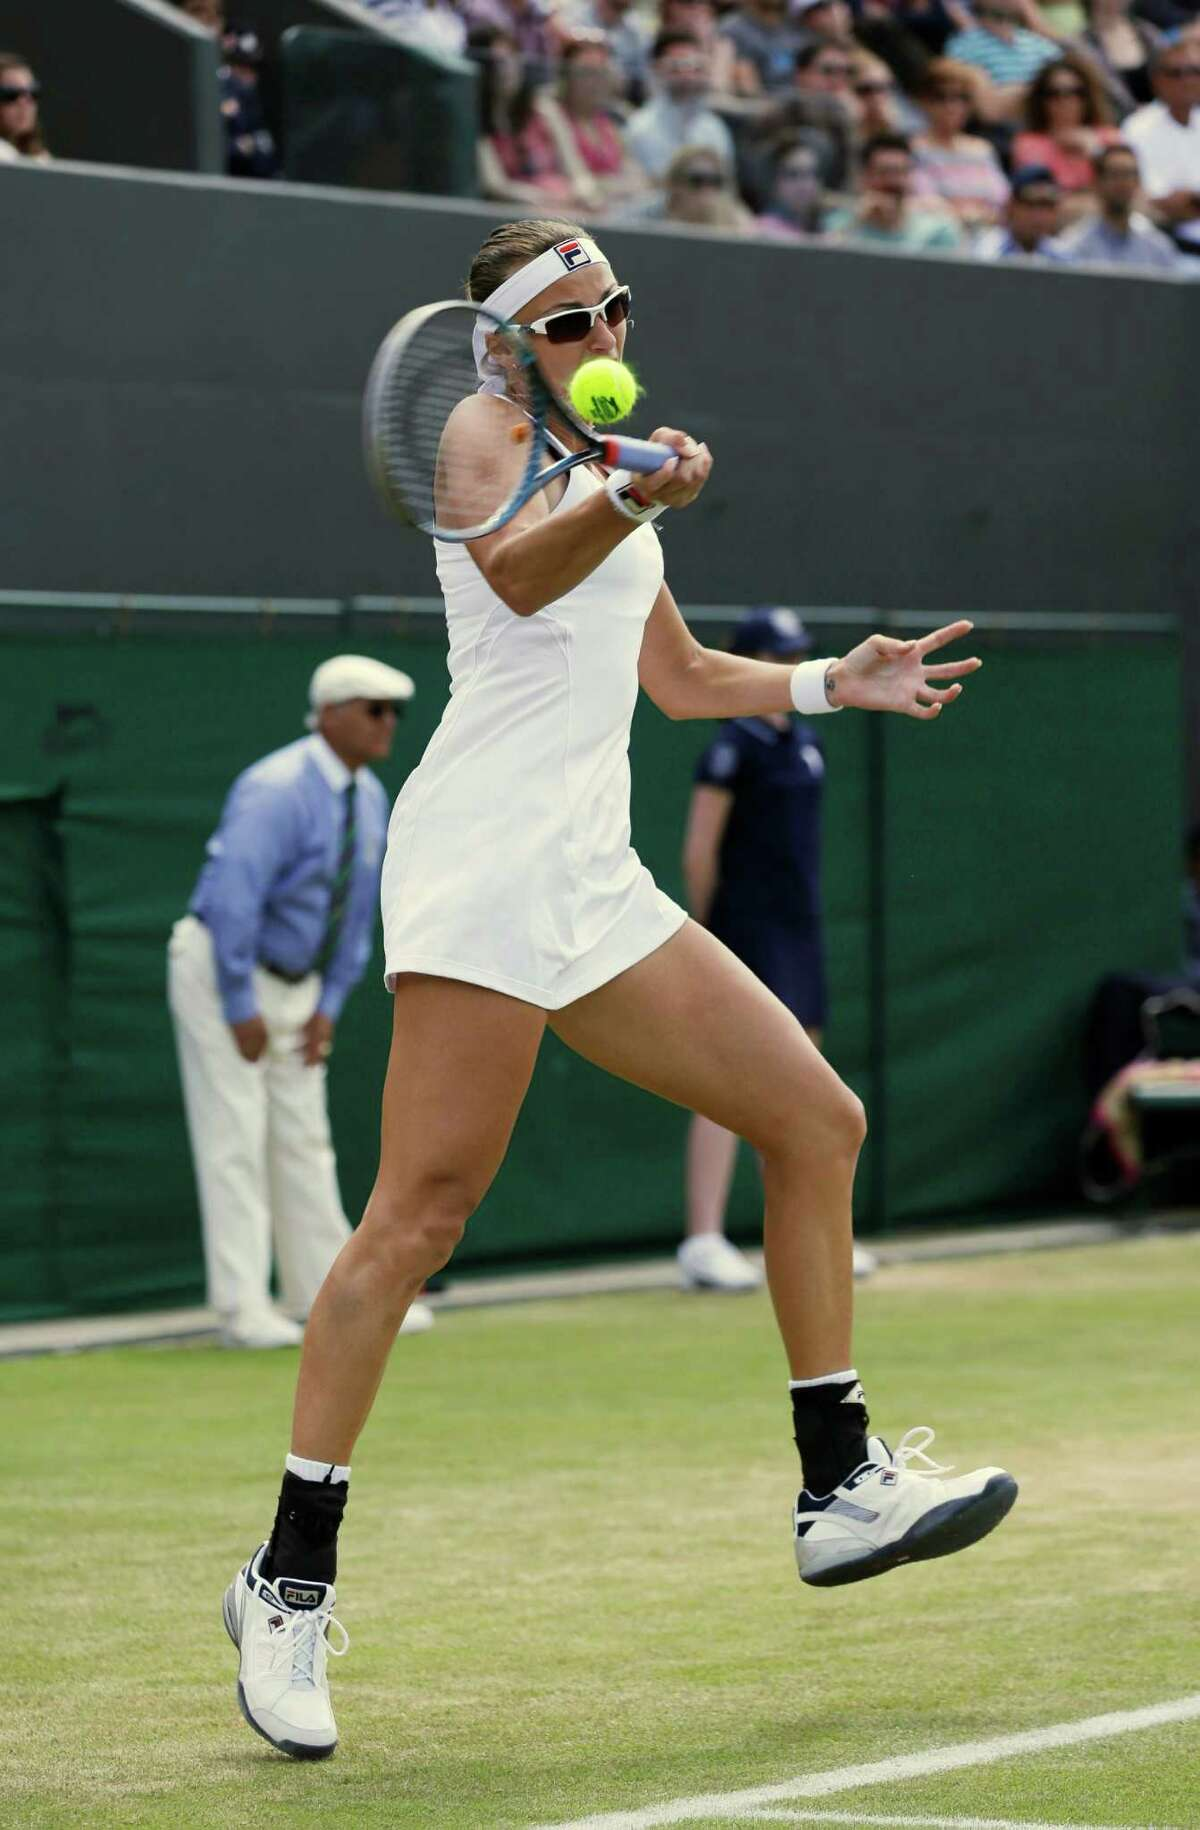 Yaroslava Shvedova of Kazakhstan plays a return to Sara Errani of Italy during a third round women's singles match at the All England Lawn Tennis Championships at Wimbledon, England, Saturday, June 30, 2012.